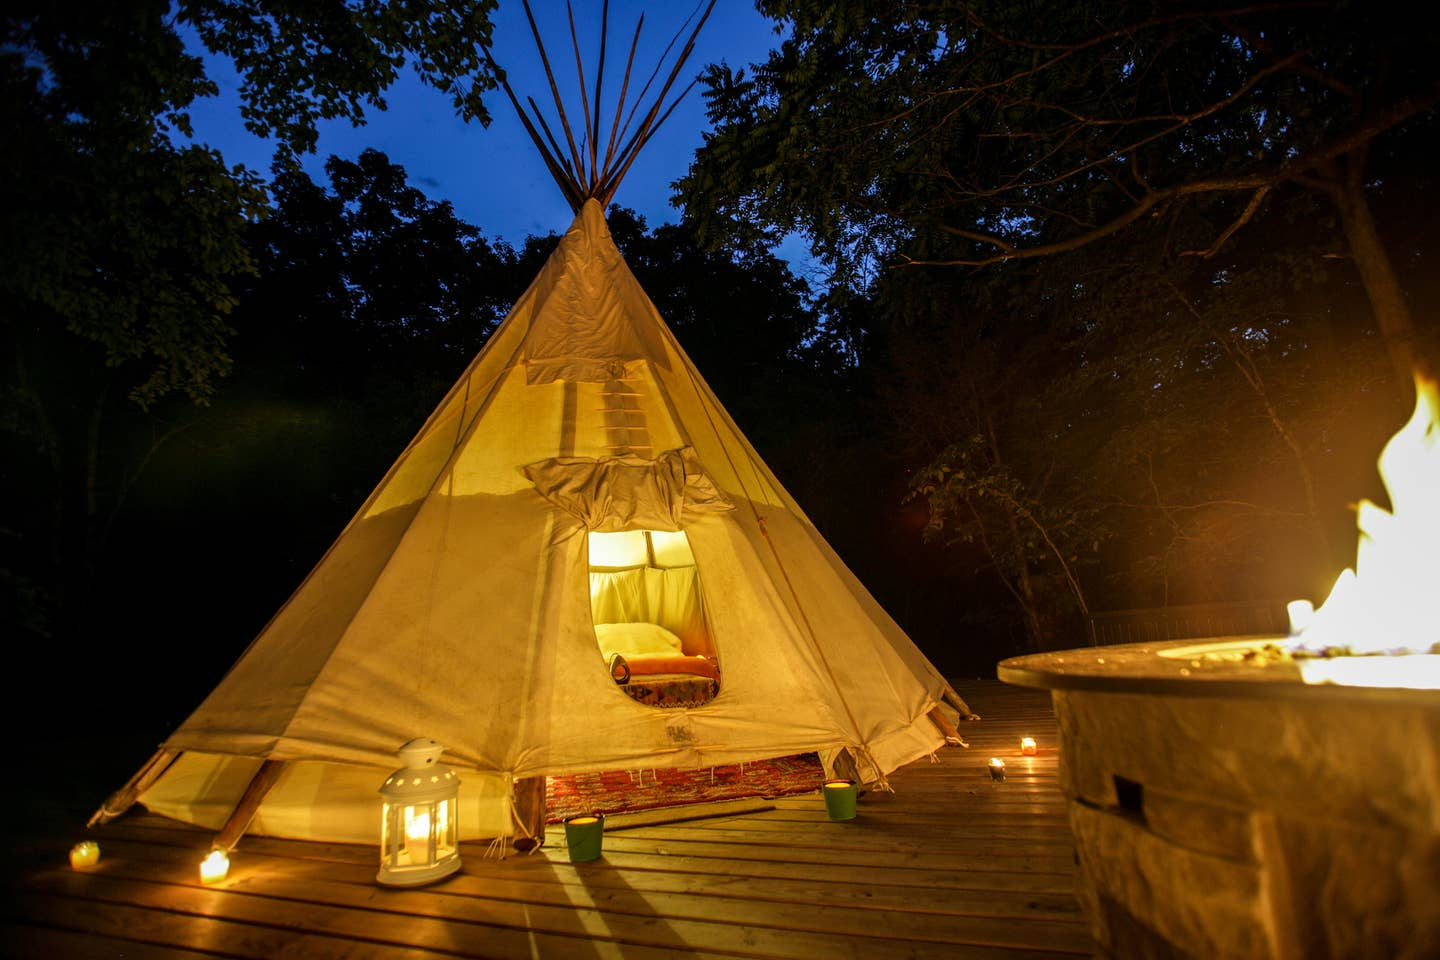 Most Unique USA Airbnbs tipi clamping tent Ozarks Missouri